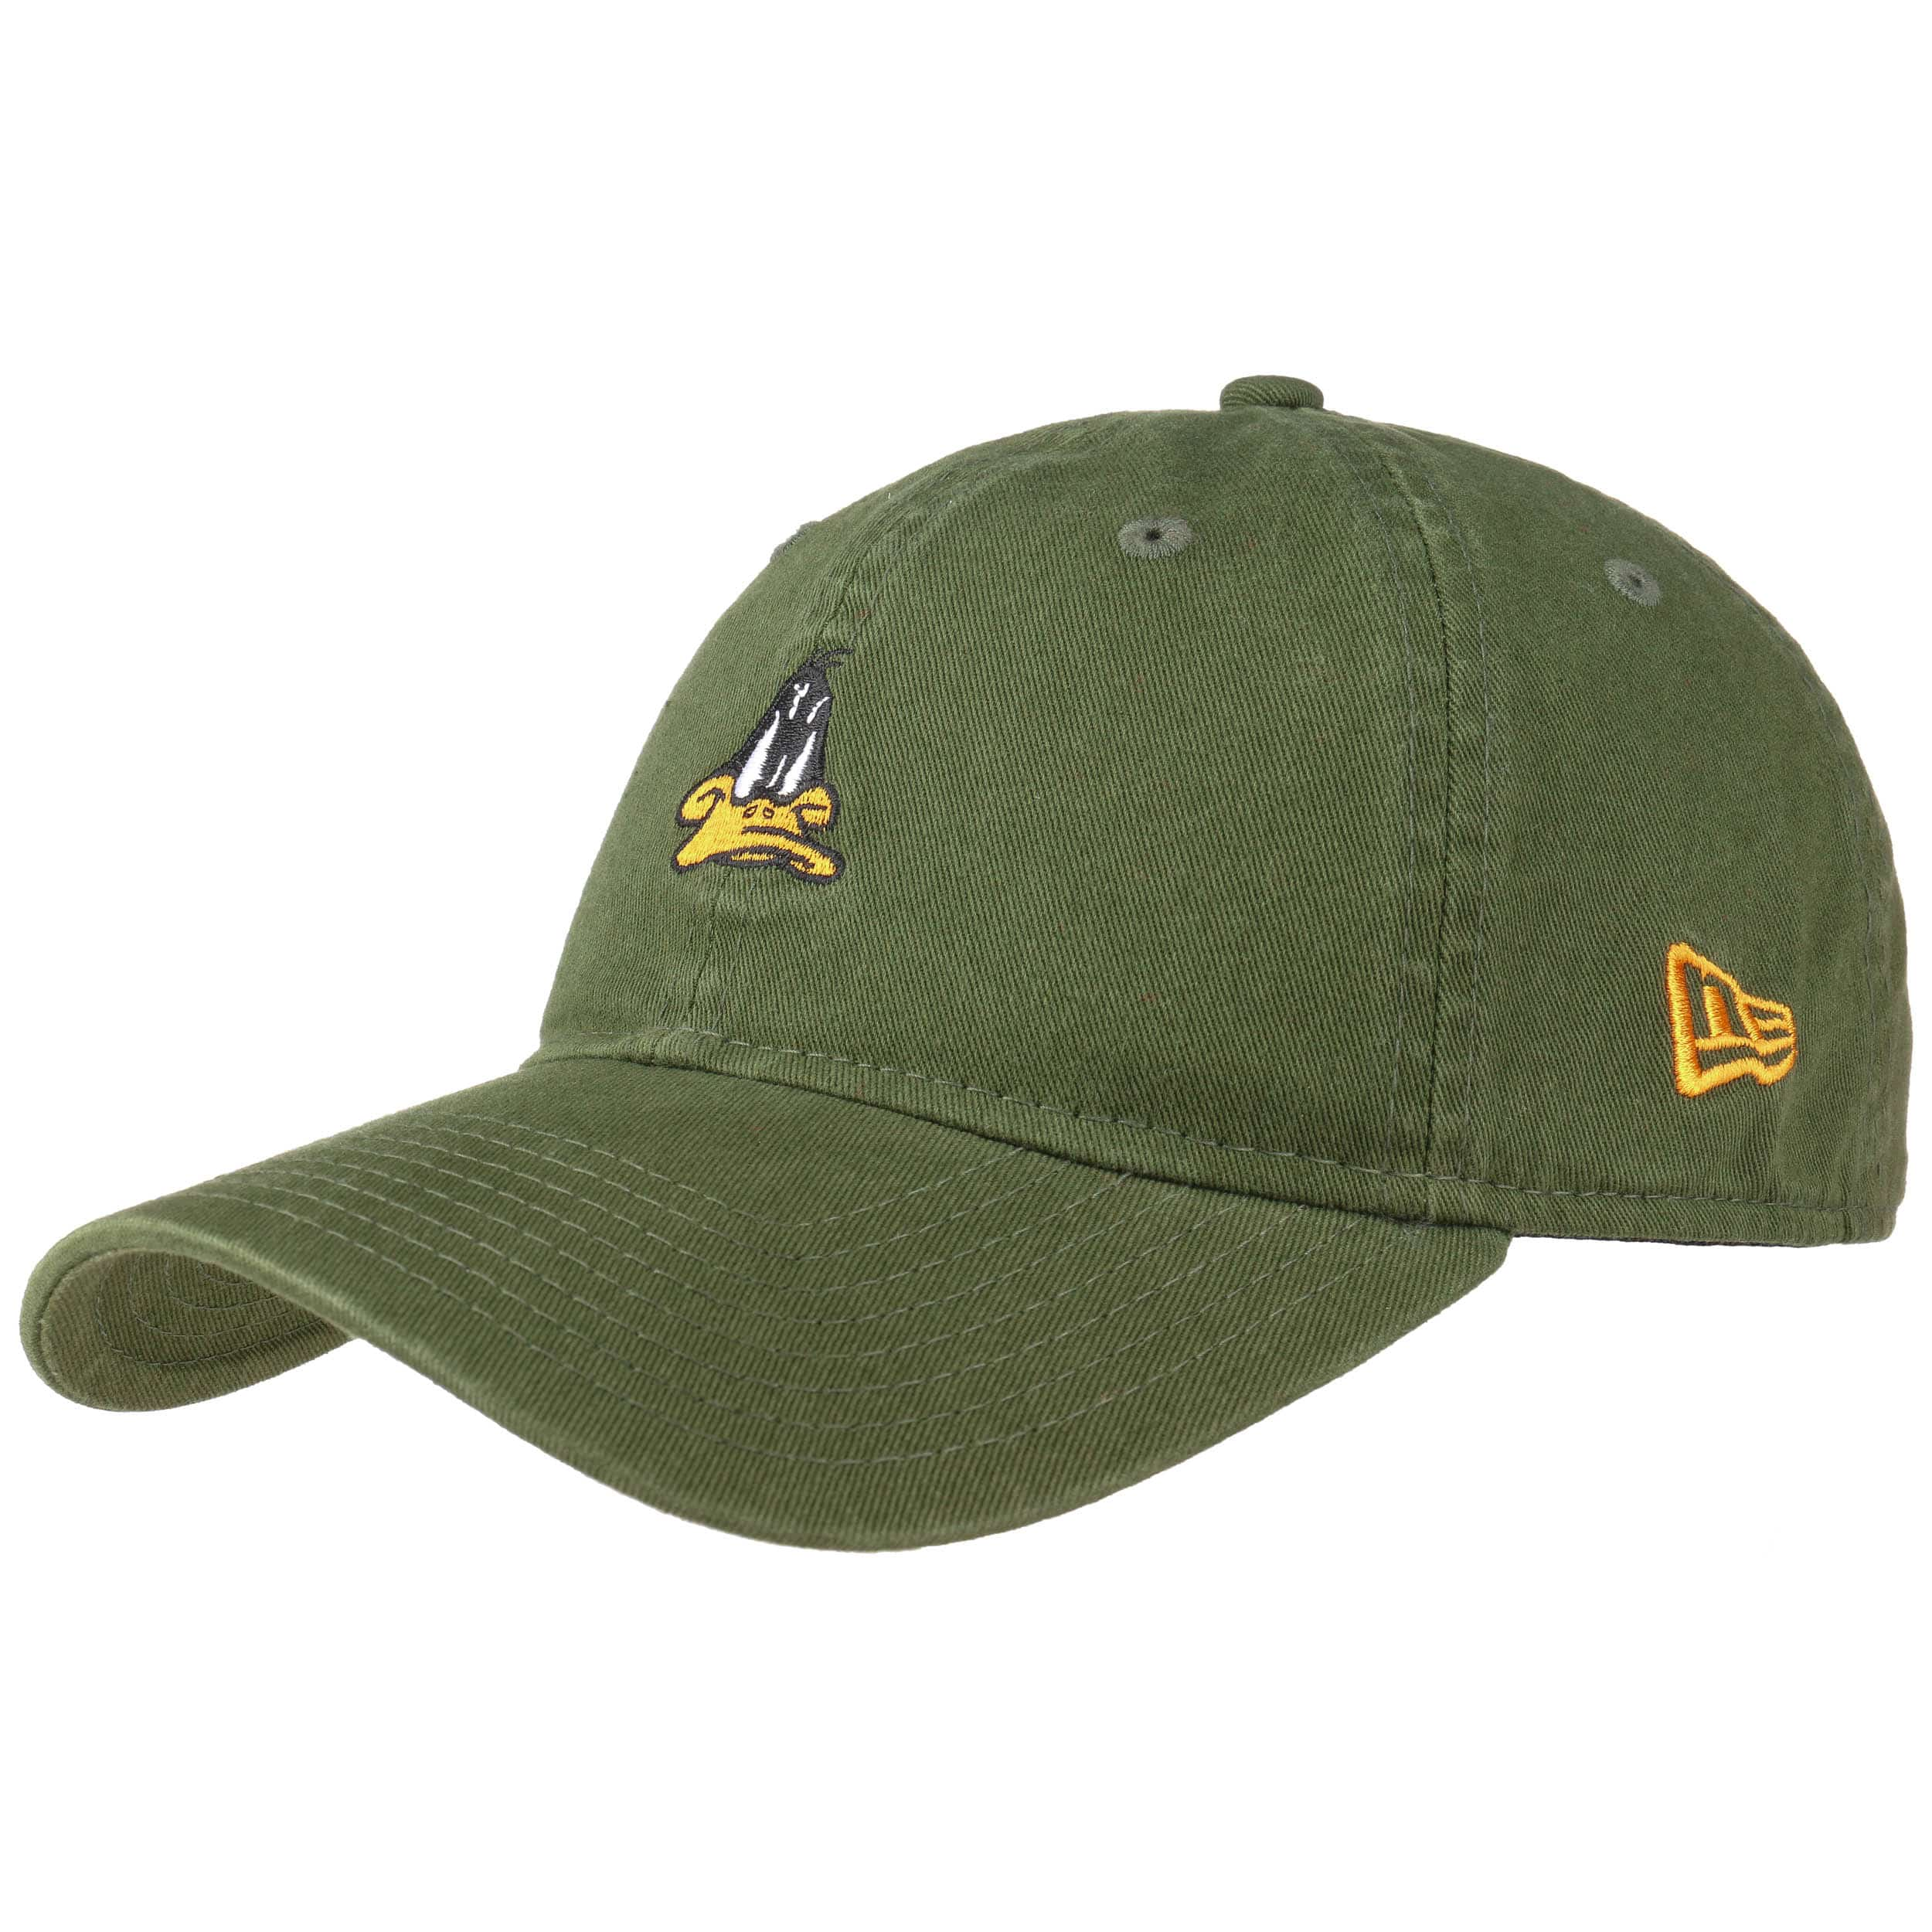 ... 9Forty Looney Tunes Daffy Duck Cap by New Era - olive 6 b58553ea561